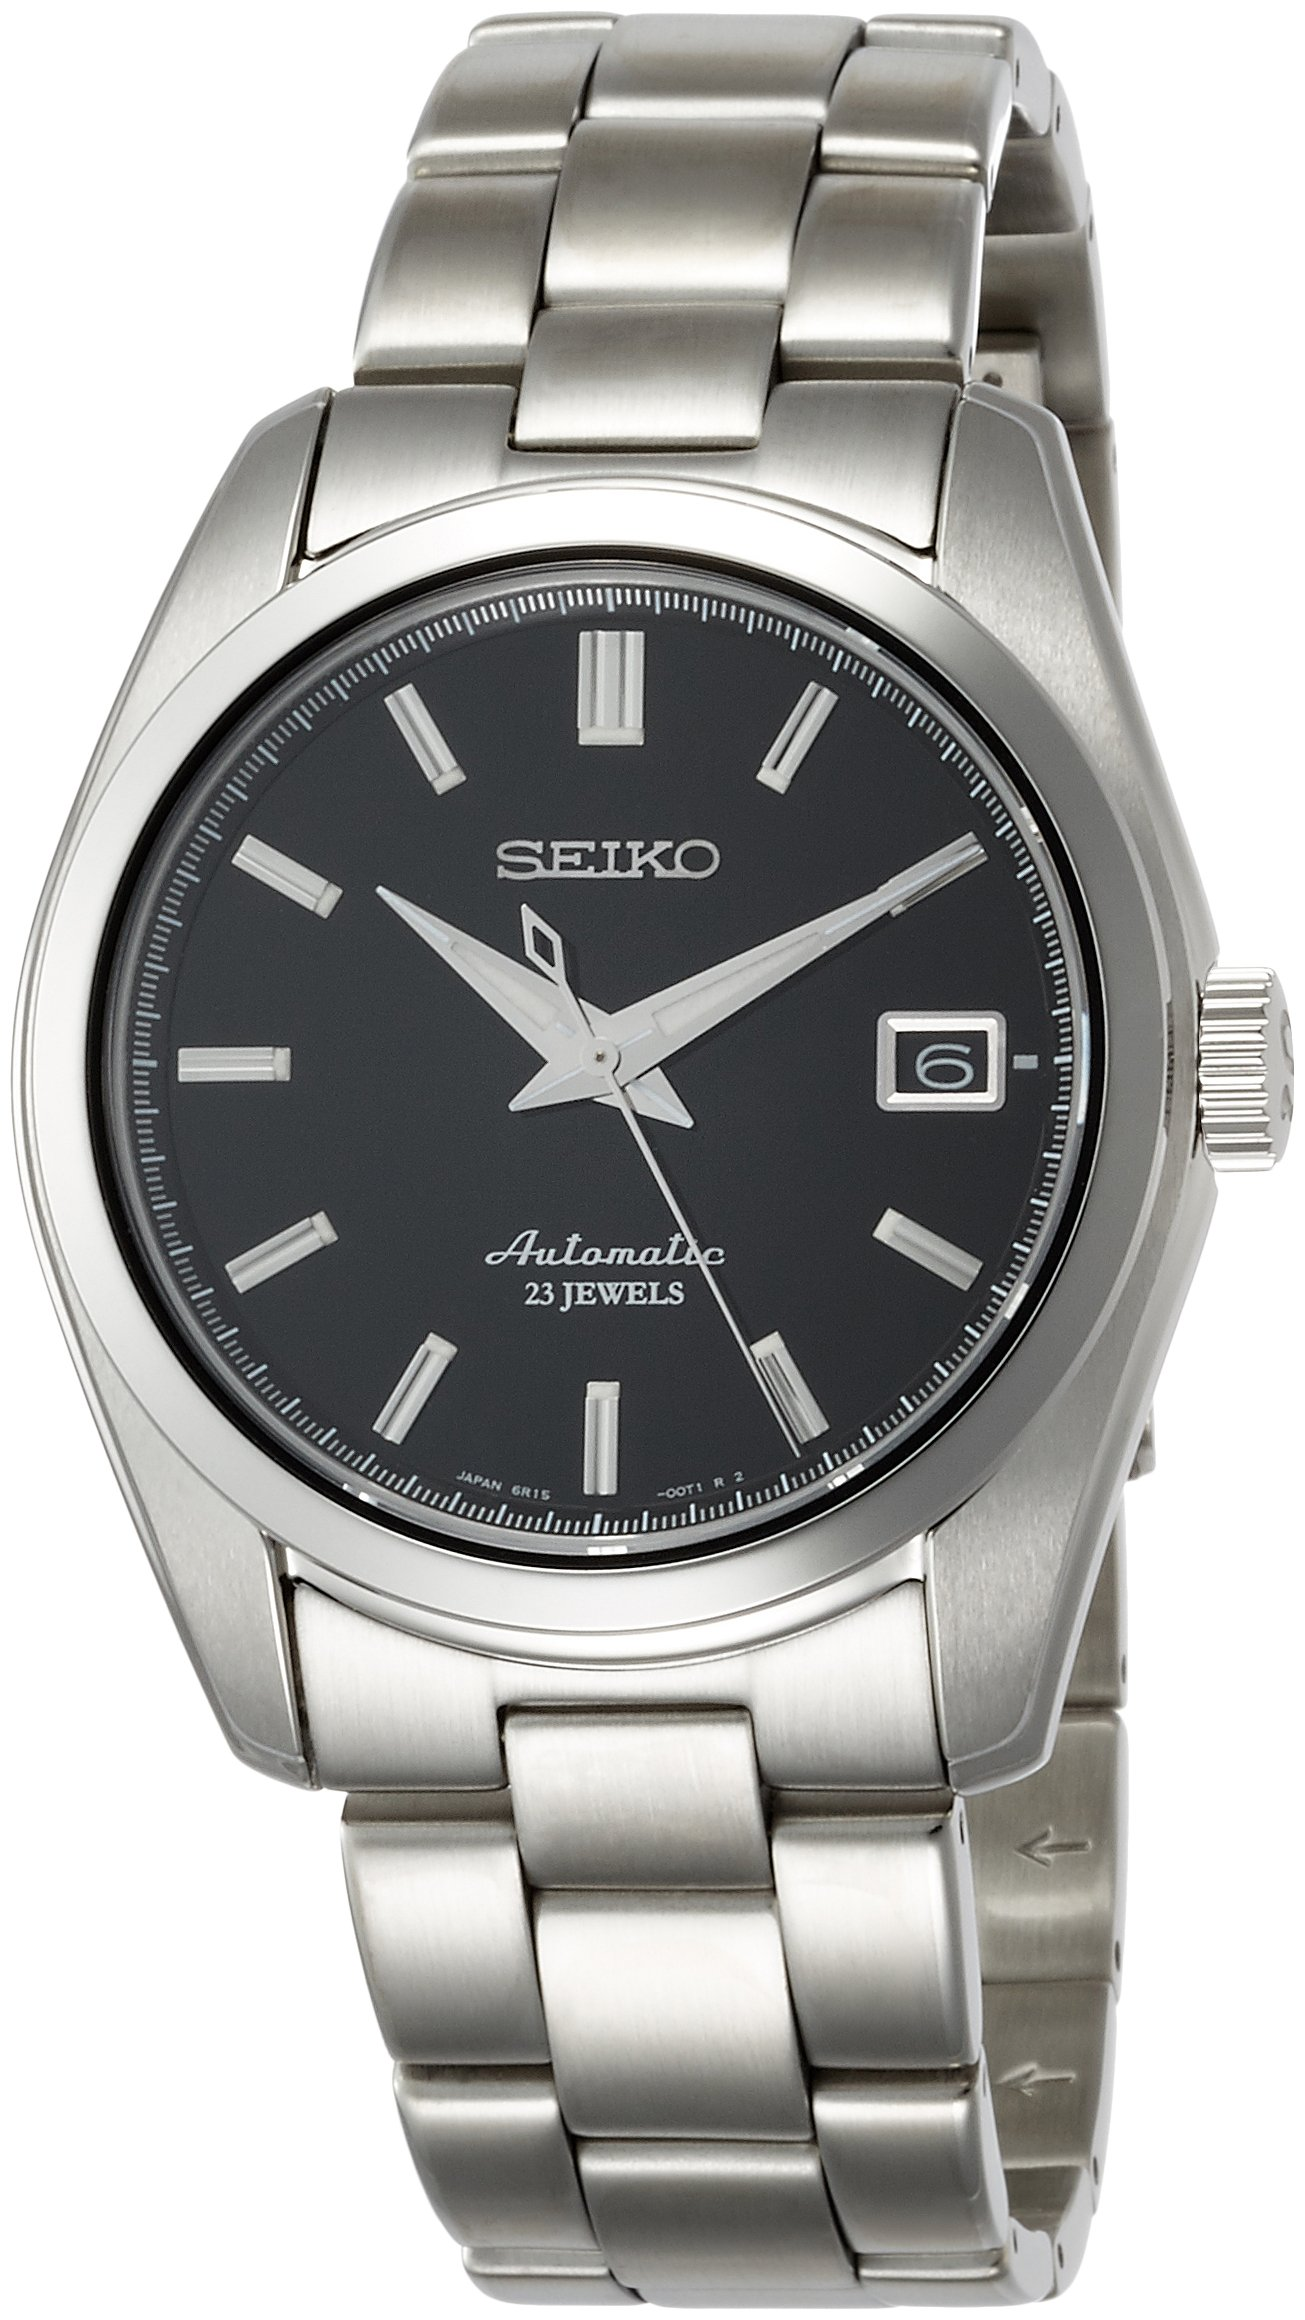 Seiko Men's Japanese-Automatic Watch with Stainless-Steel Strap, Silver, 20 (Model: SARB033) by SEIKO